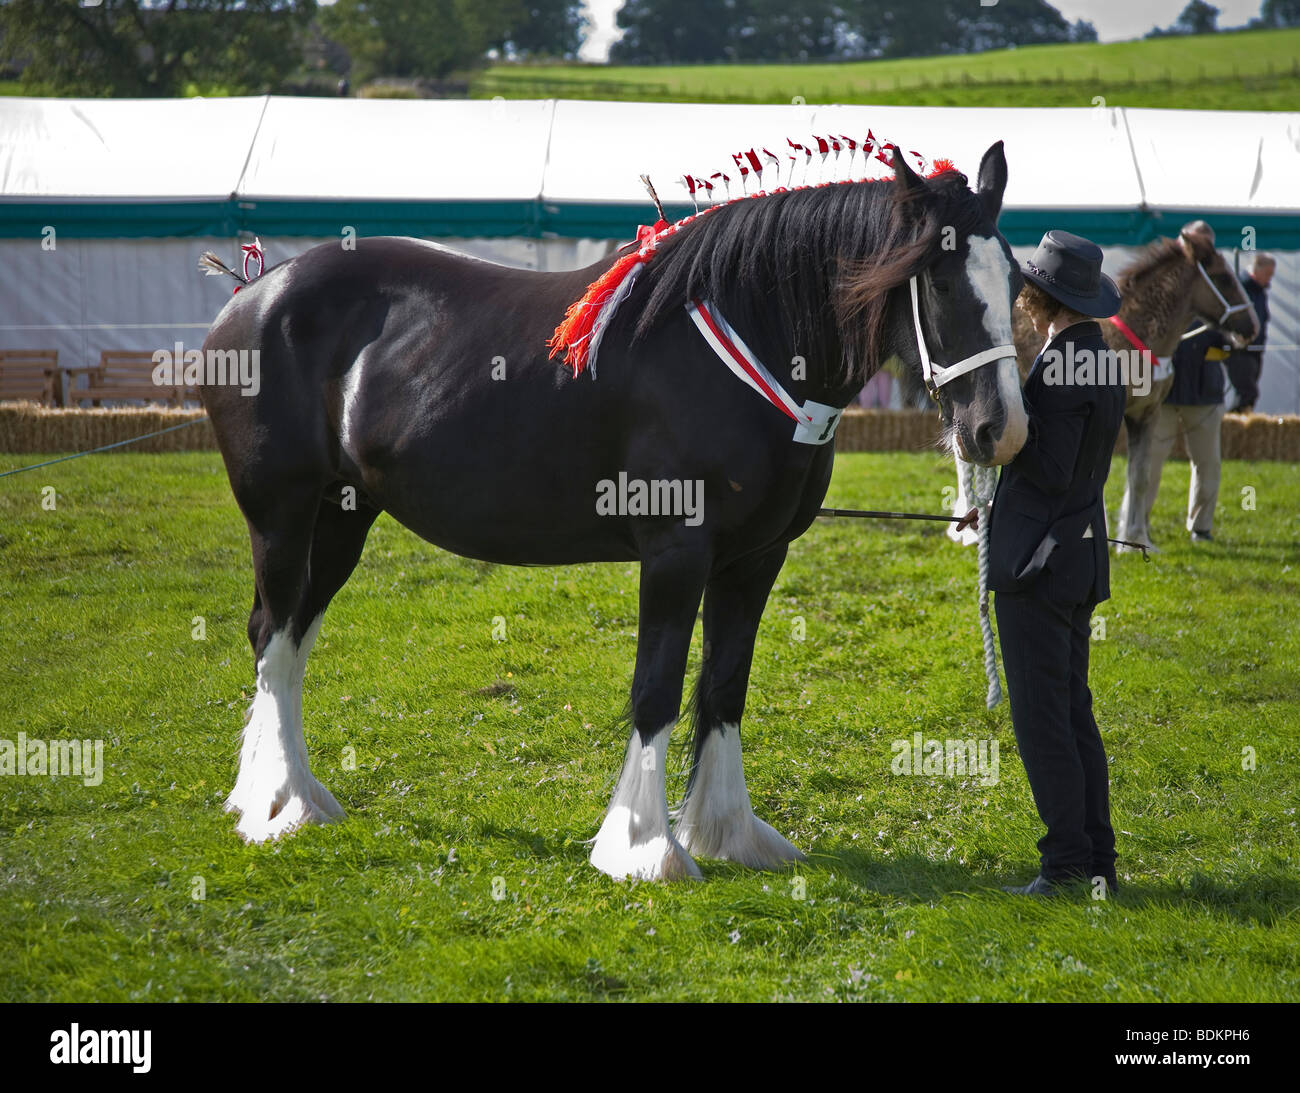 Shire Horse awaiting judging for the Heavy Horse class, in the show ring at the Malham agricultural show, Yorkshire - Stock Image